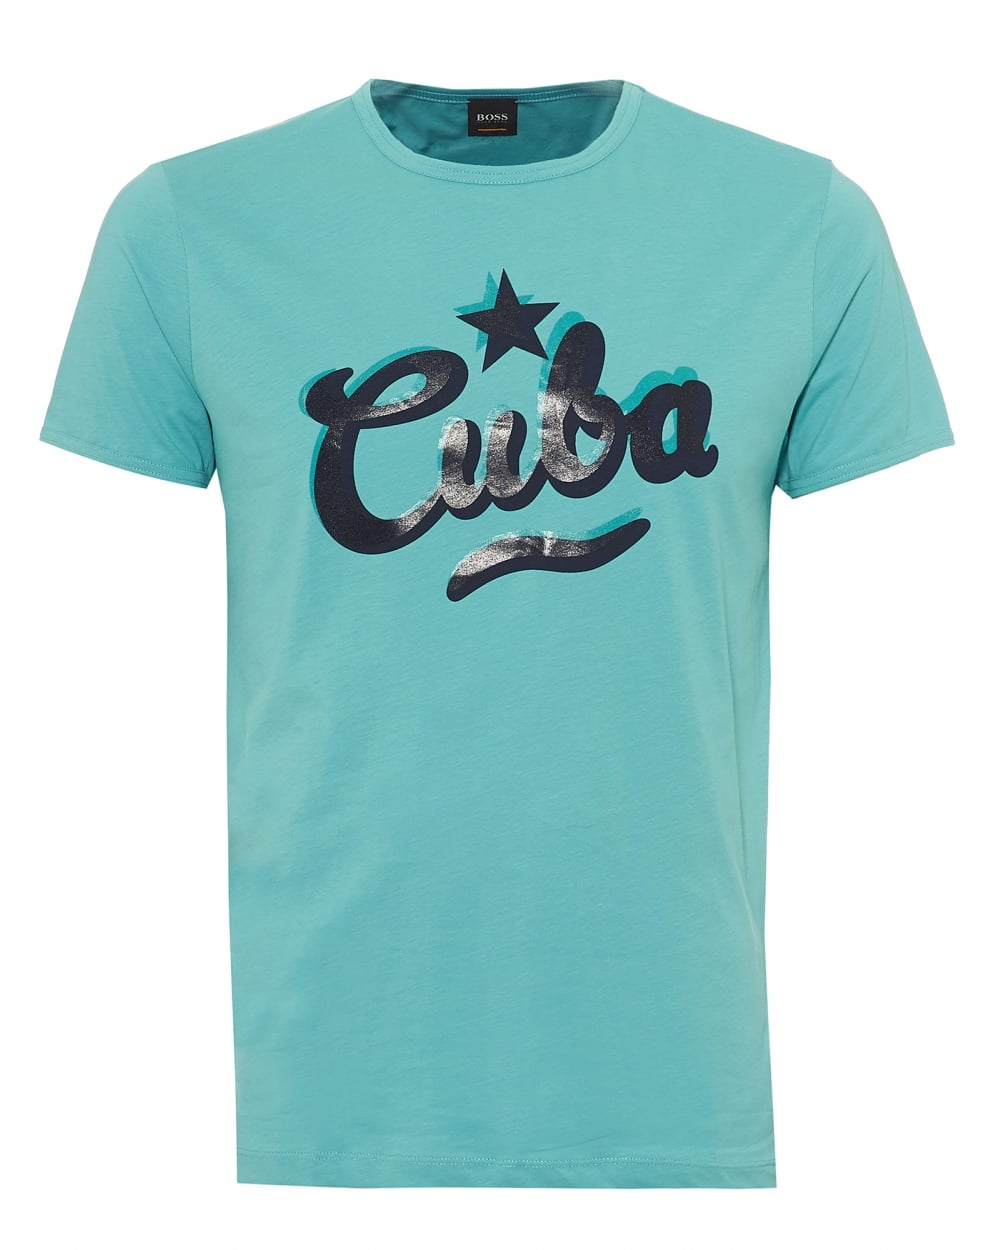 Mens Tauno 5 T-Shirt, Slanted Cuba Graphic Aqua Blue Tee